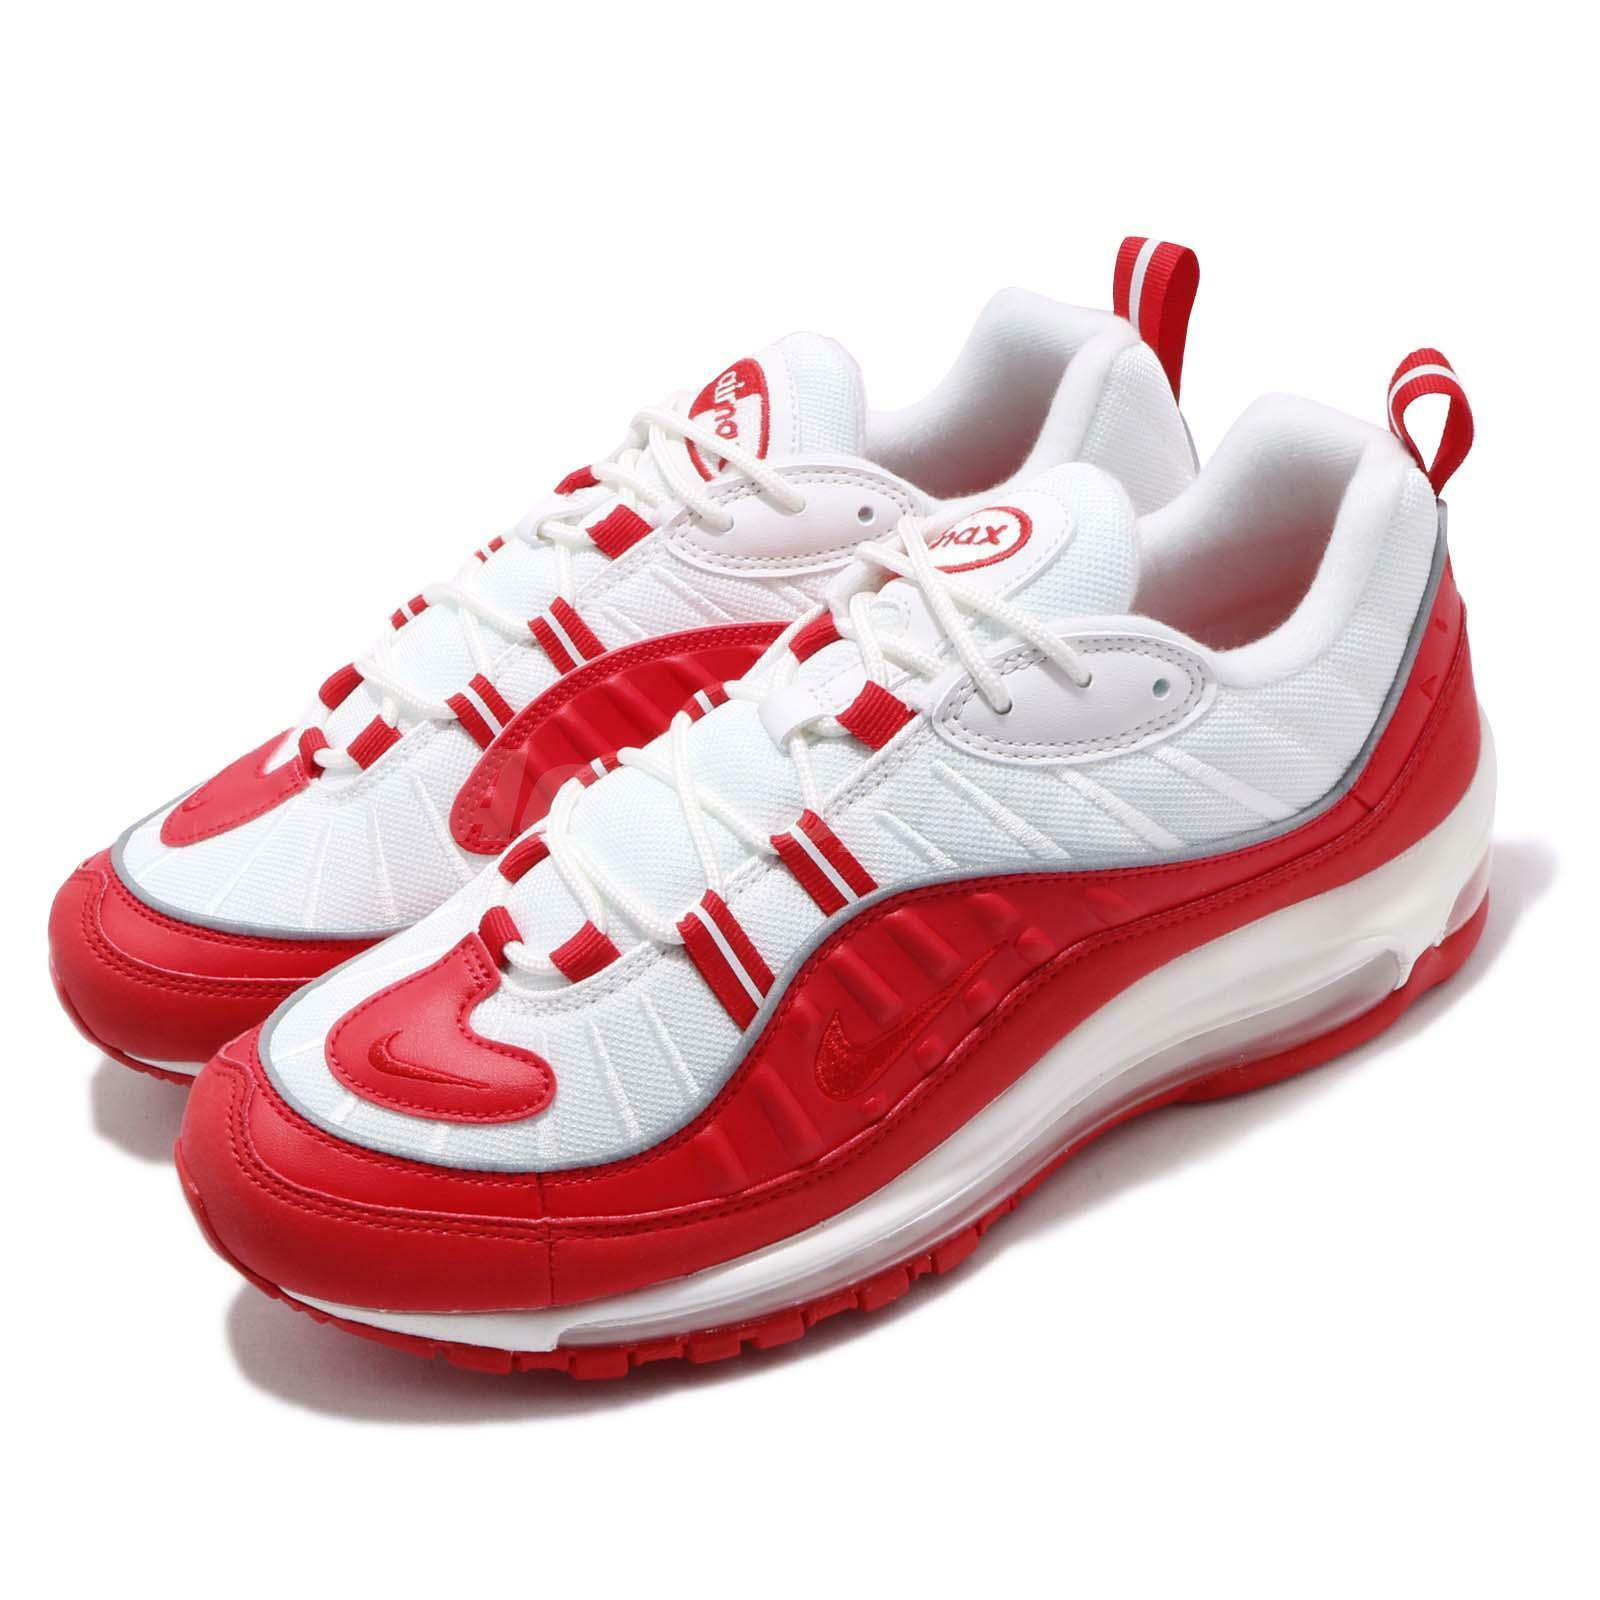 lowest price 243cd b2917 University 98 Max Air Nike Red 640744-602 Sneakers NSW shoes ...